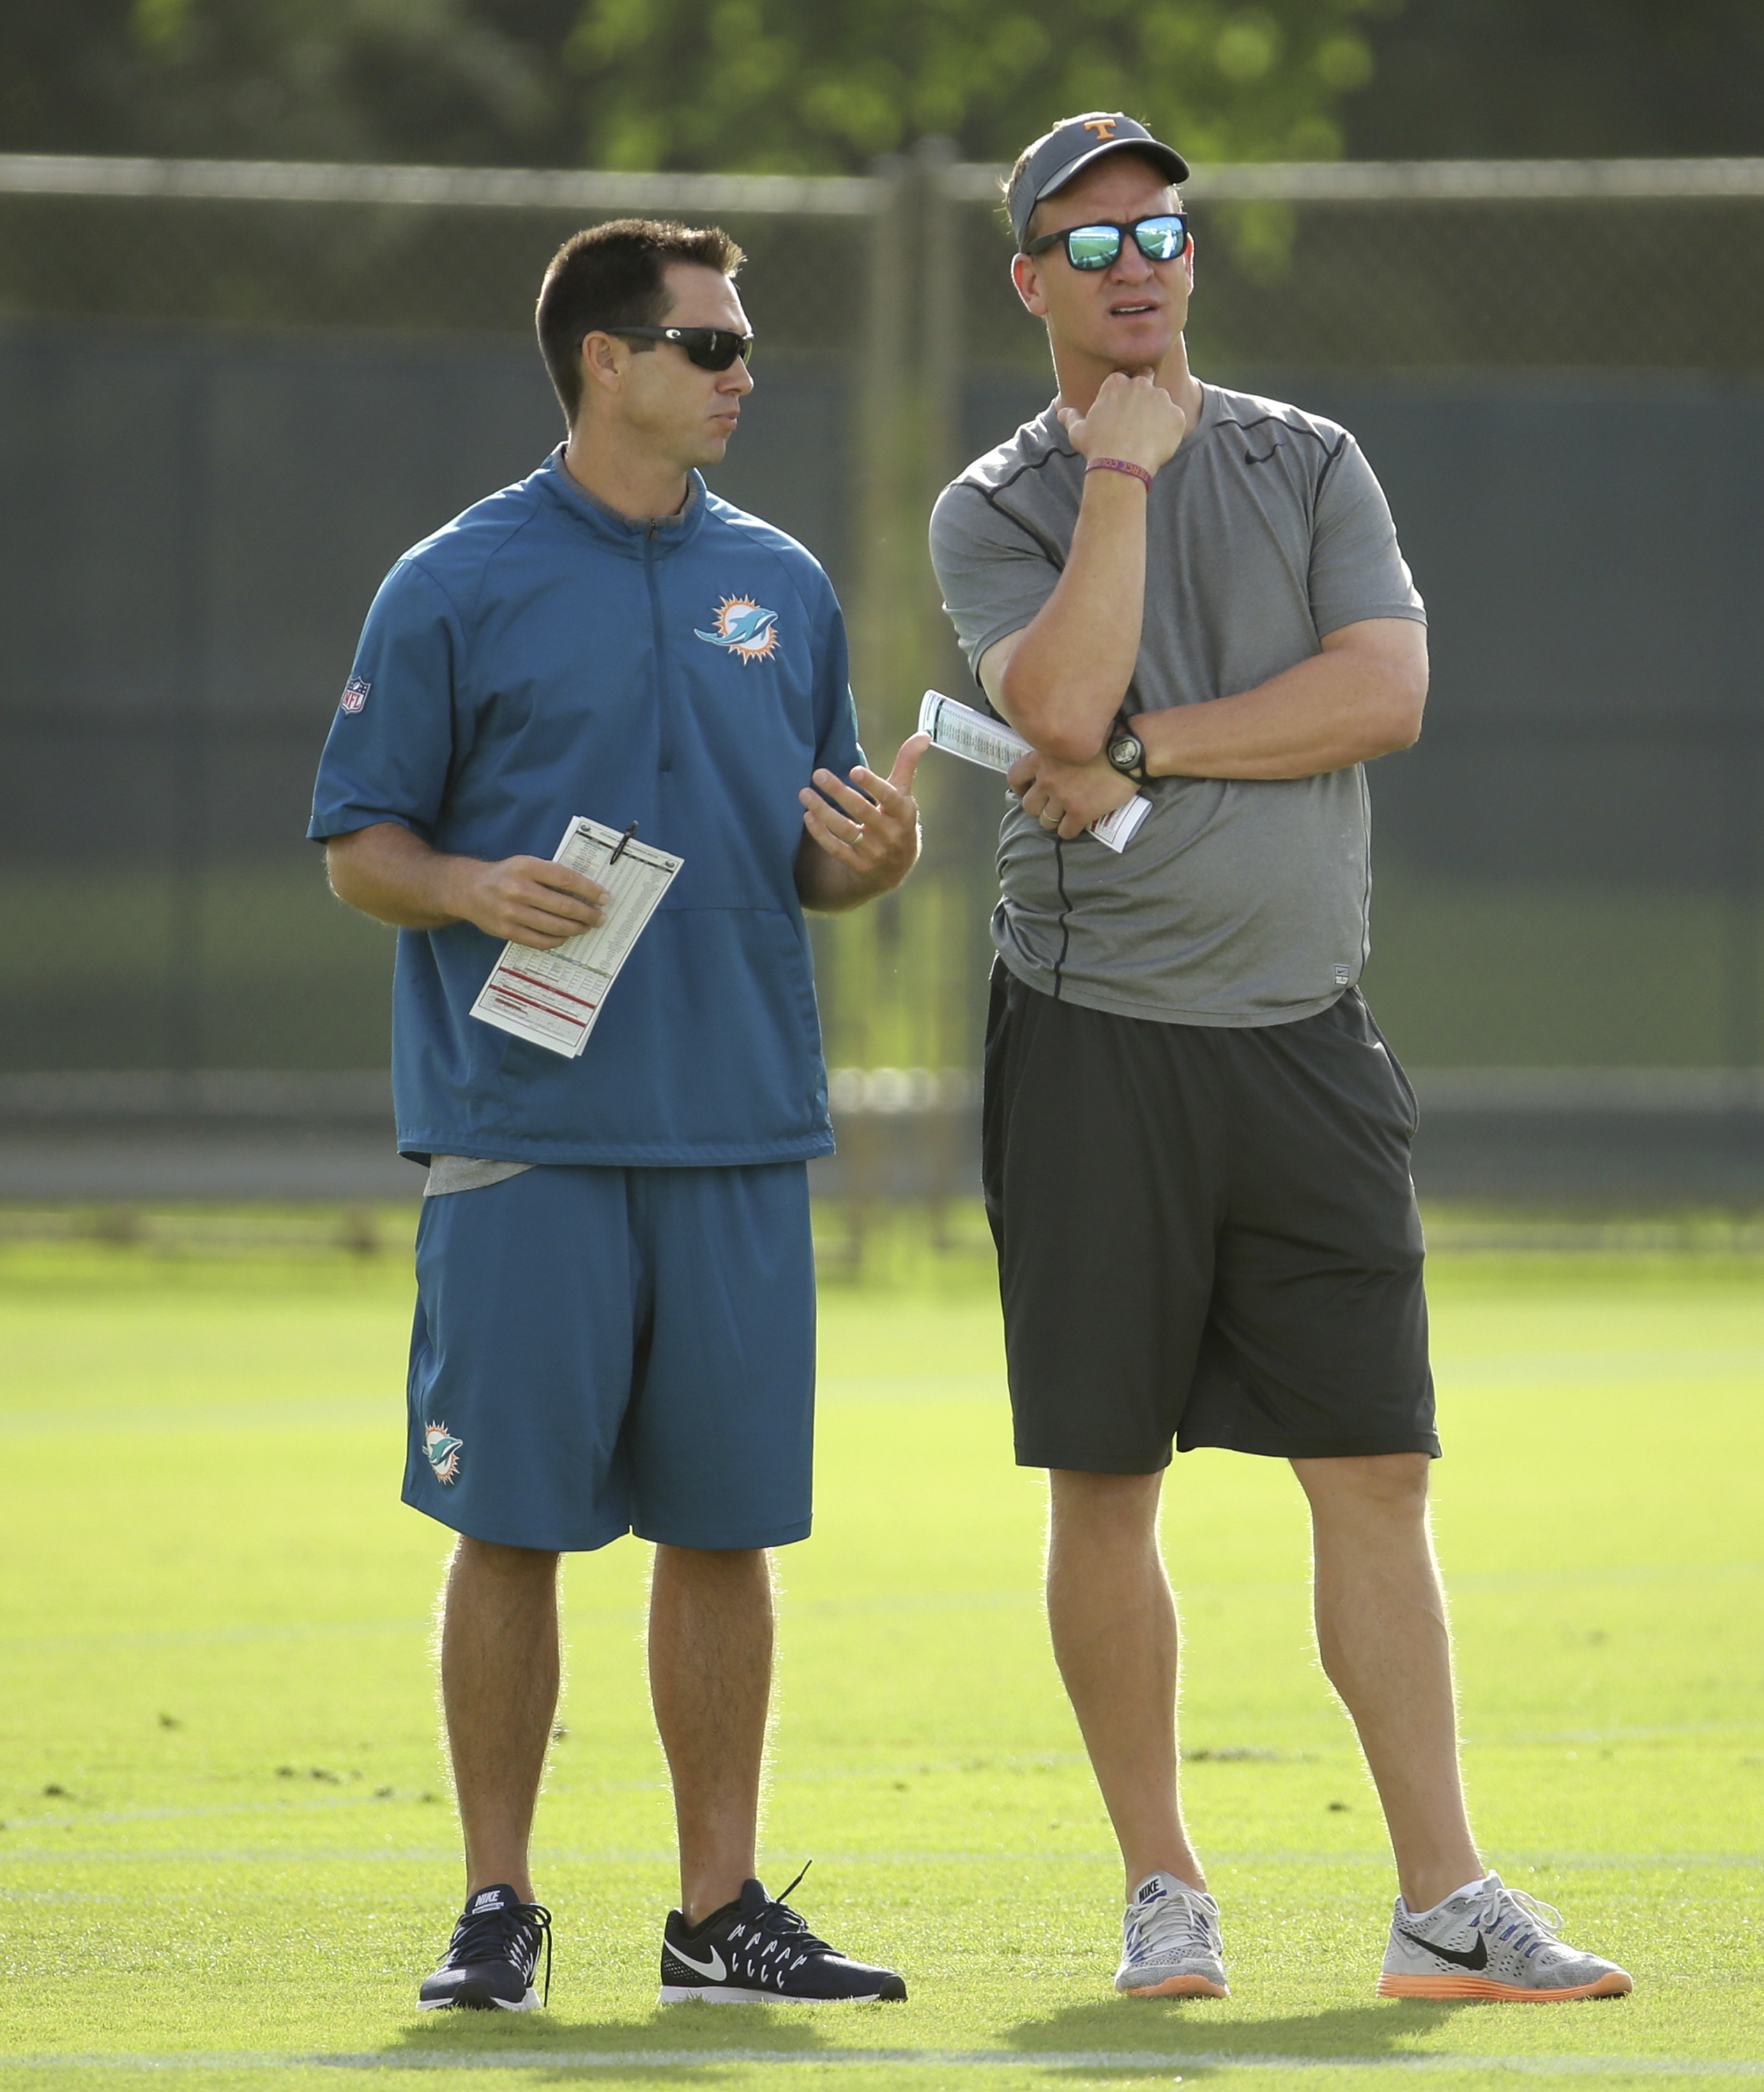 Former NFL quarterback Peyton Manning, right, watches Miami Dolphins NFL training camp with Joe Schoen, director of the Dolphins player personnel, Monday, Aug. 1, 2016 in Davie, Fla. (AP Photo/Lynne Sladky)